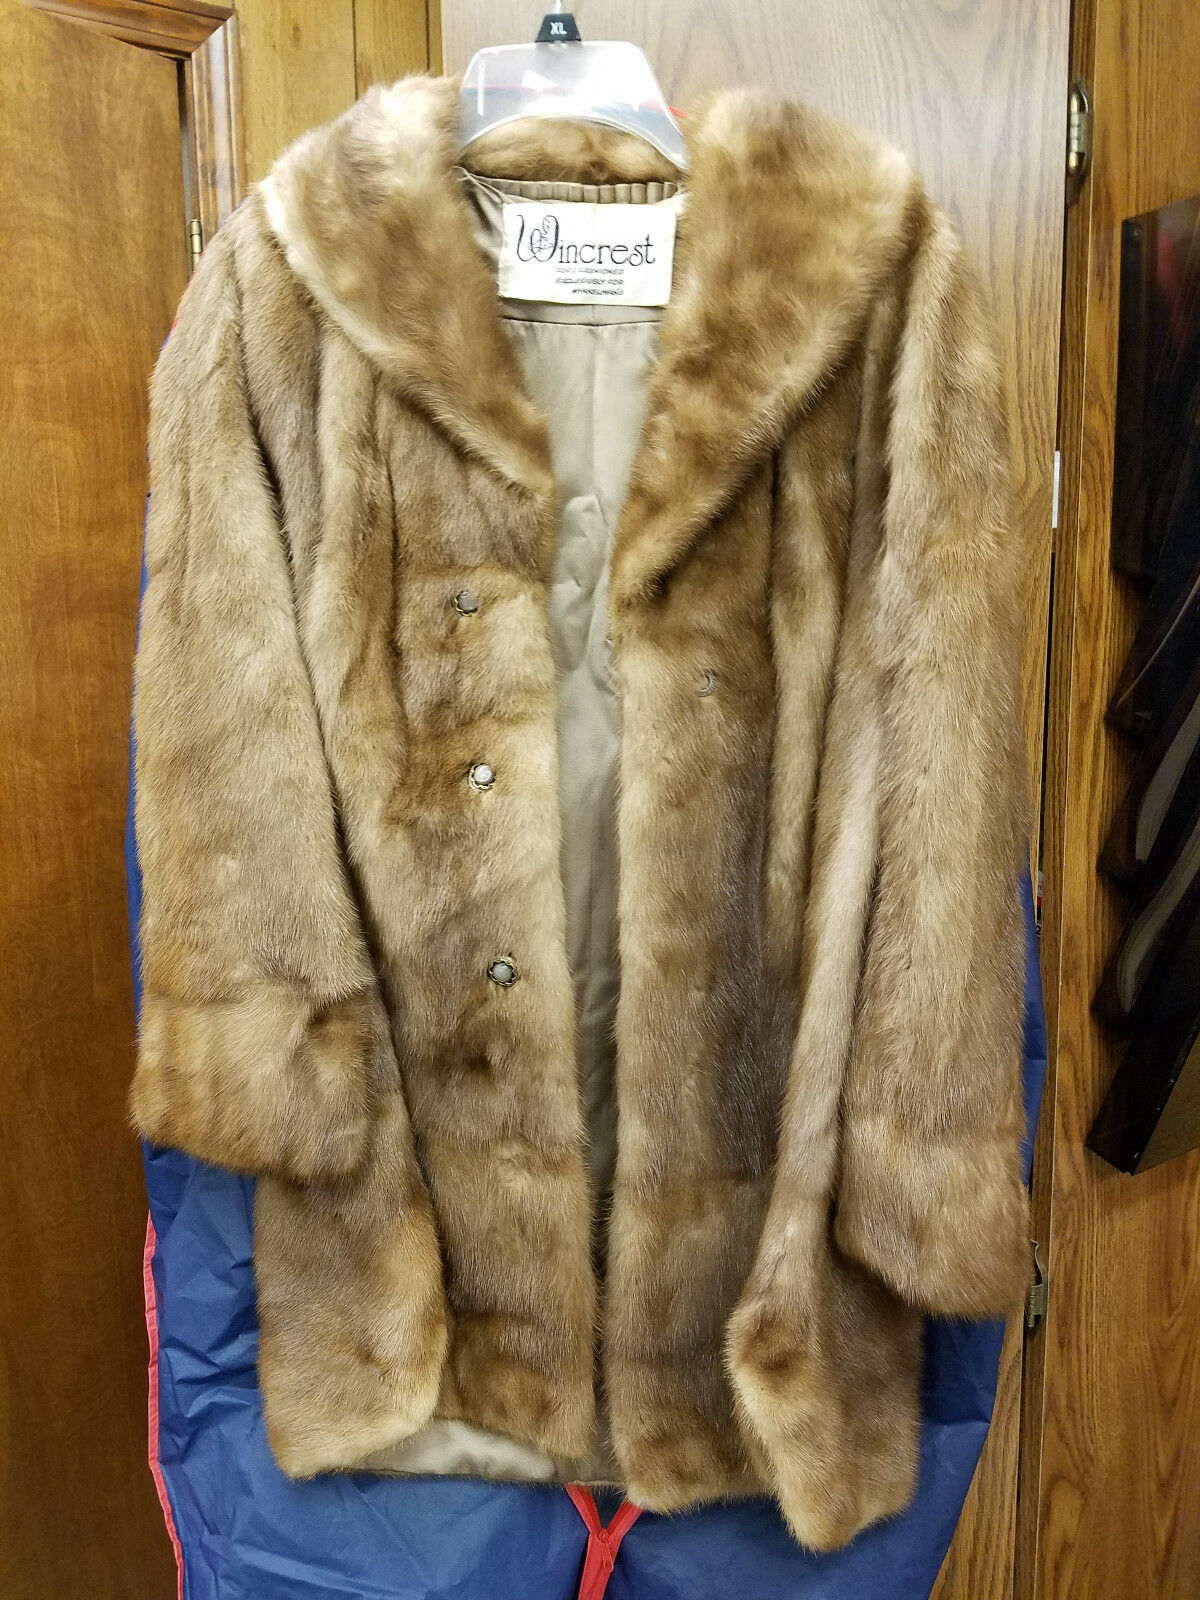 Wincrest Medium Length Fur Coat Exclusively for Winkleman's